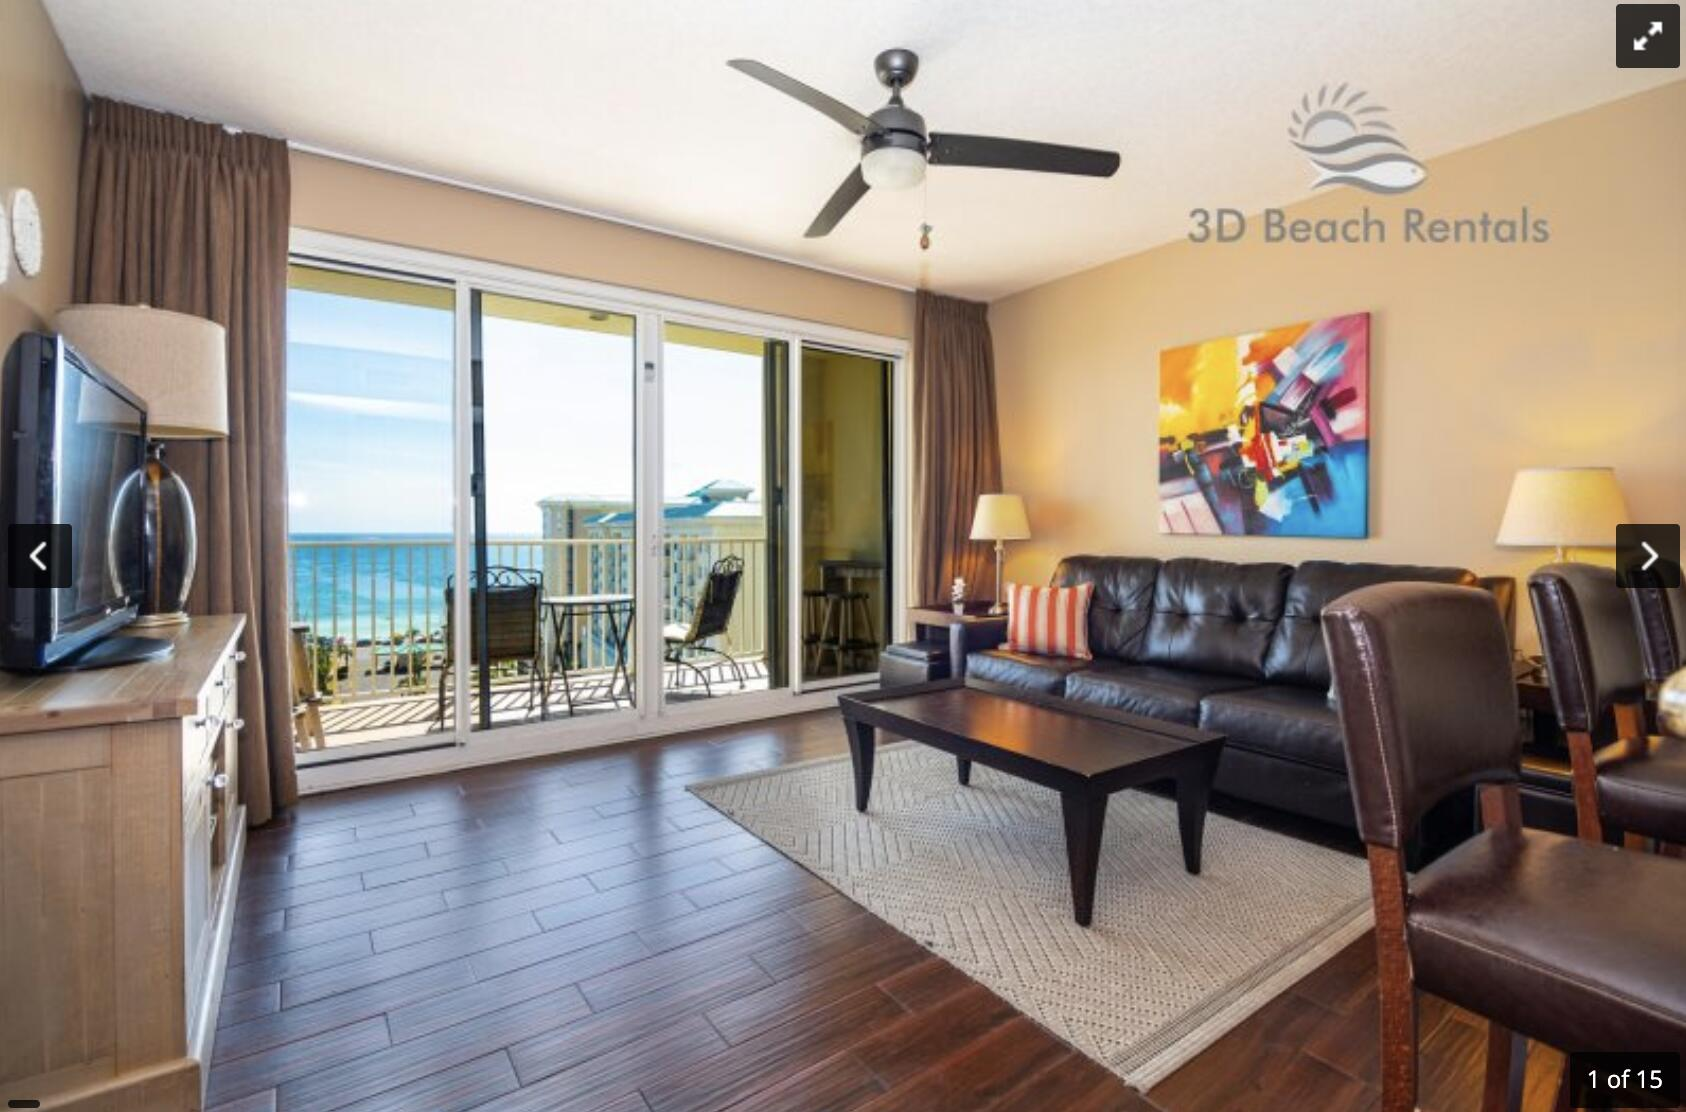 This eleventh floor condo (1106), in Ariel Dunes I, features one of the best views in the building. A very short walk to a private beach and you will be relaxing in the sand. This condo sleeps 6 with a master bedroom, two built in bunk beds in the hallway, and a pull-out sofa in the living room. There are LCD TVs in the master bedroom and living room. Condo comes with in unit washer/dryer, wifi, cable TV, and fitness room access. Ariel Dunes provides all Seascape resorts amenities including: 18 hole golf course, 3 full size pools, basketball courts, tennis courts, pickleball courts, and full service Cabana Cafe restaurant with live entertainment.